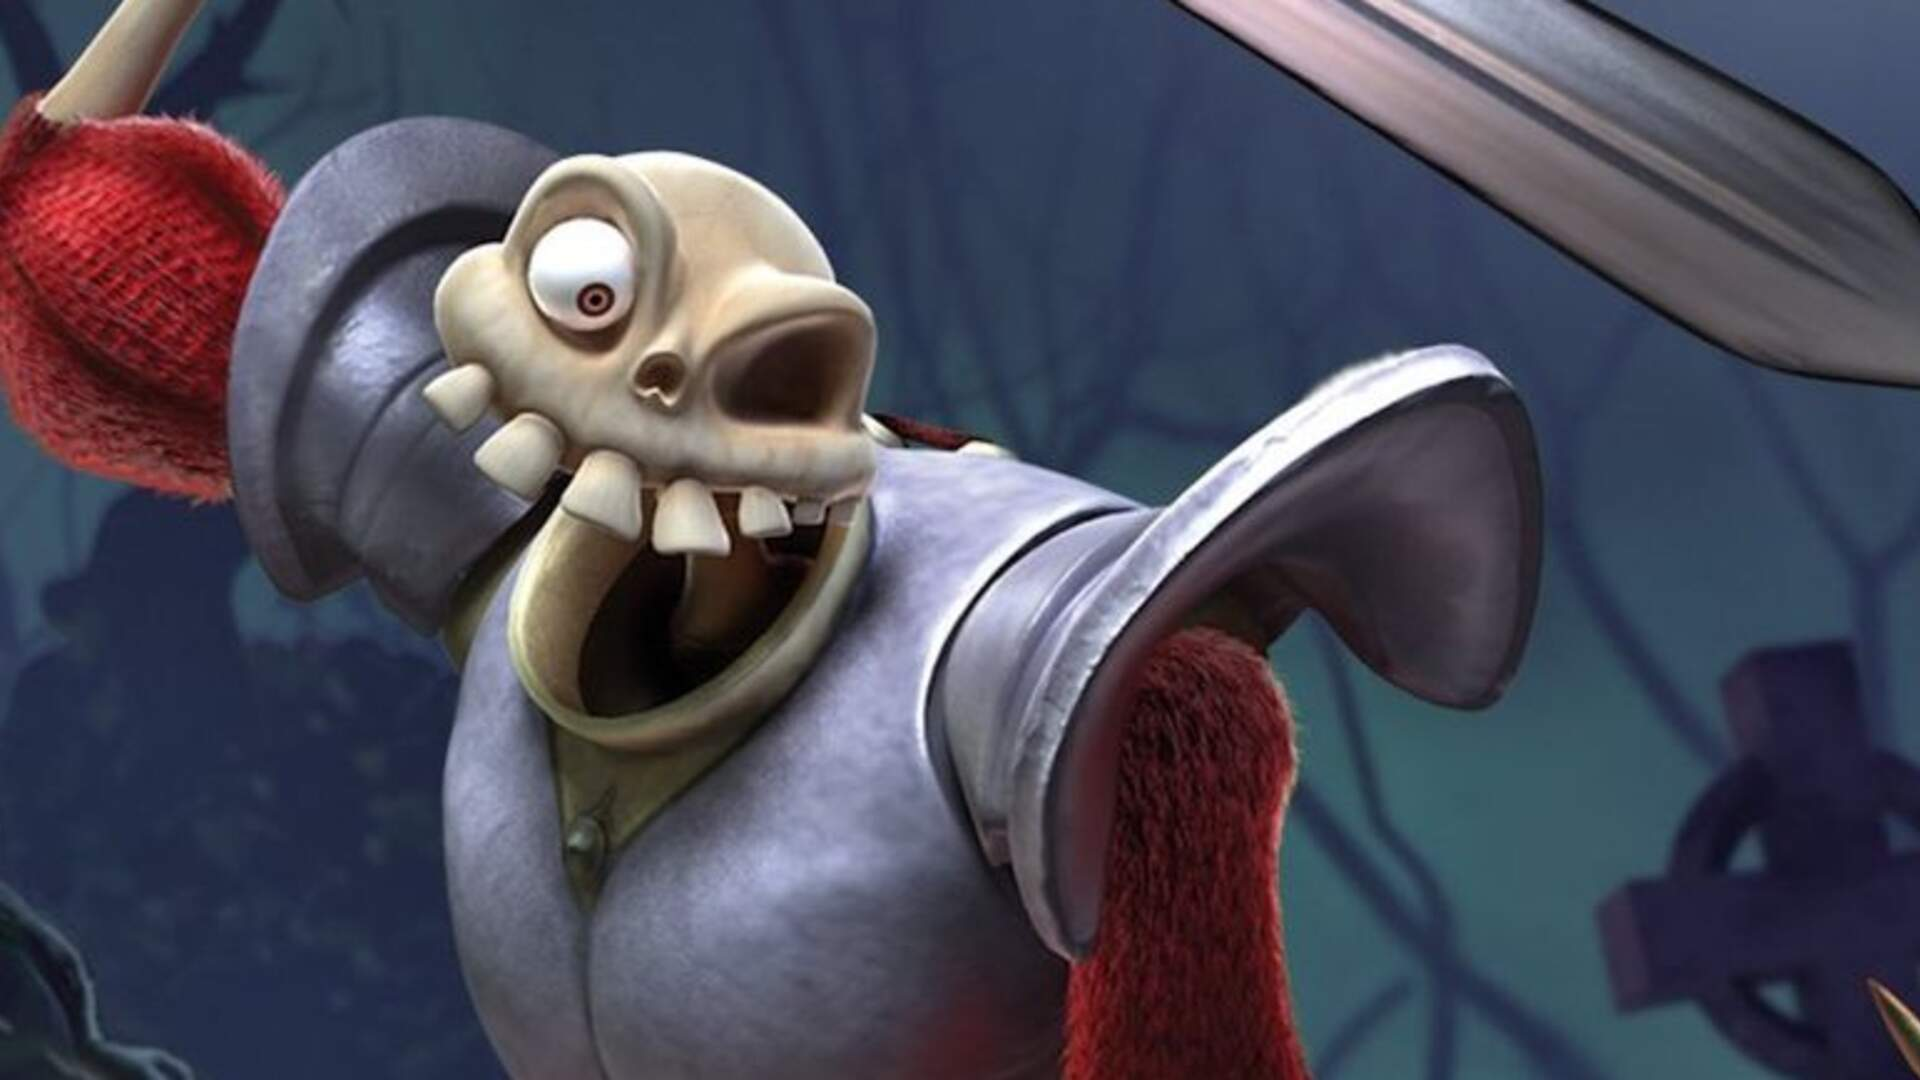 MediEvil Remake Demo Appears Briefly on the Japanese PSN Store